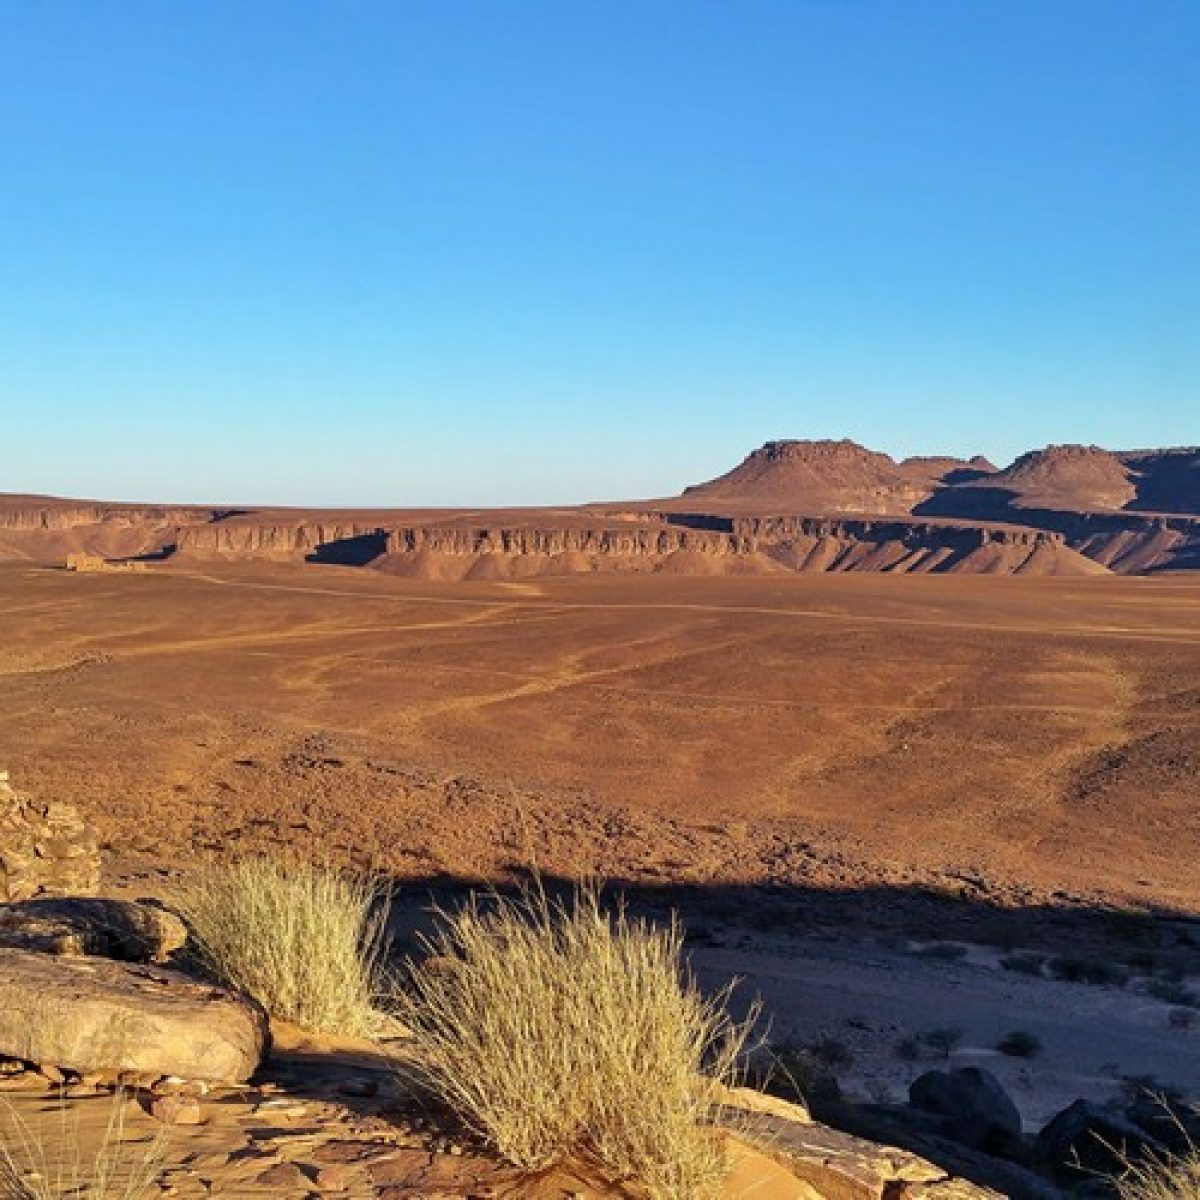 The Great Outdoors of Mauritania